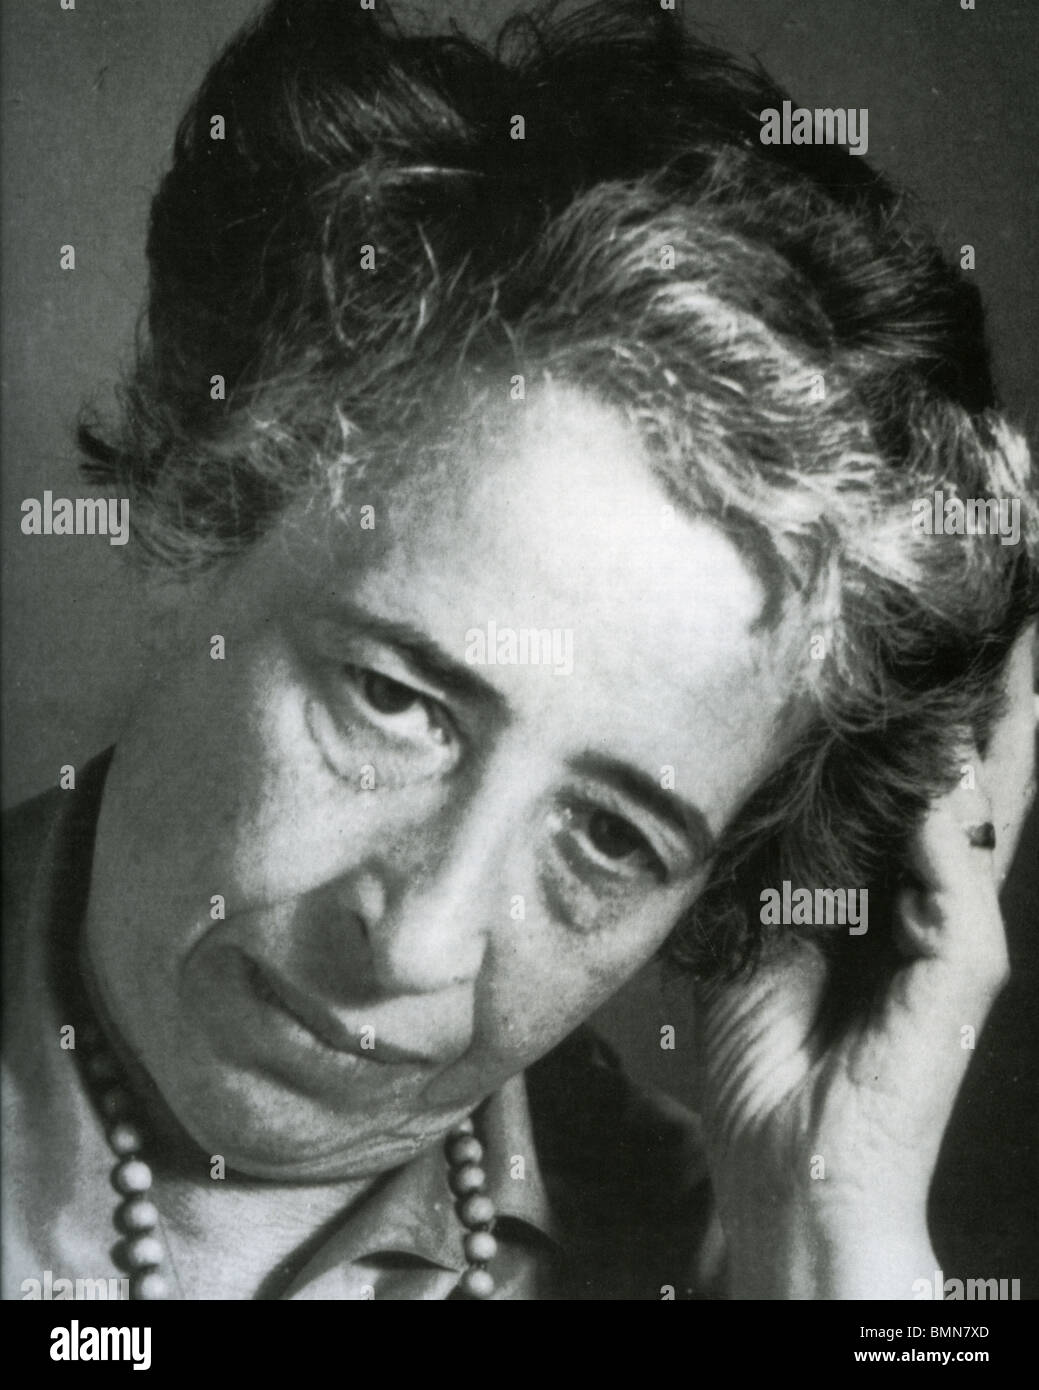 HANNAH ARENDT (1906-1975) German Jewish political theorist - Stock Image